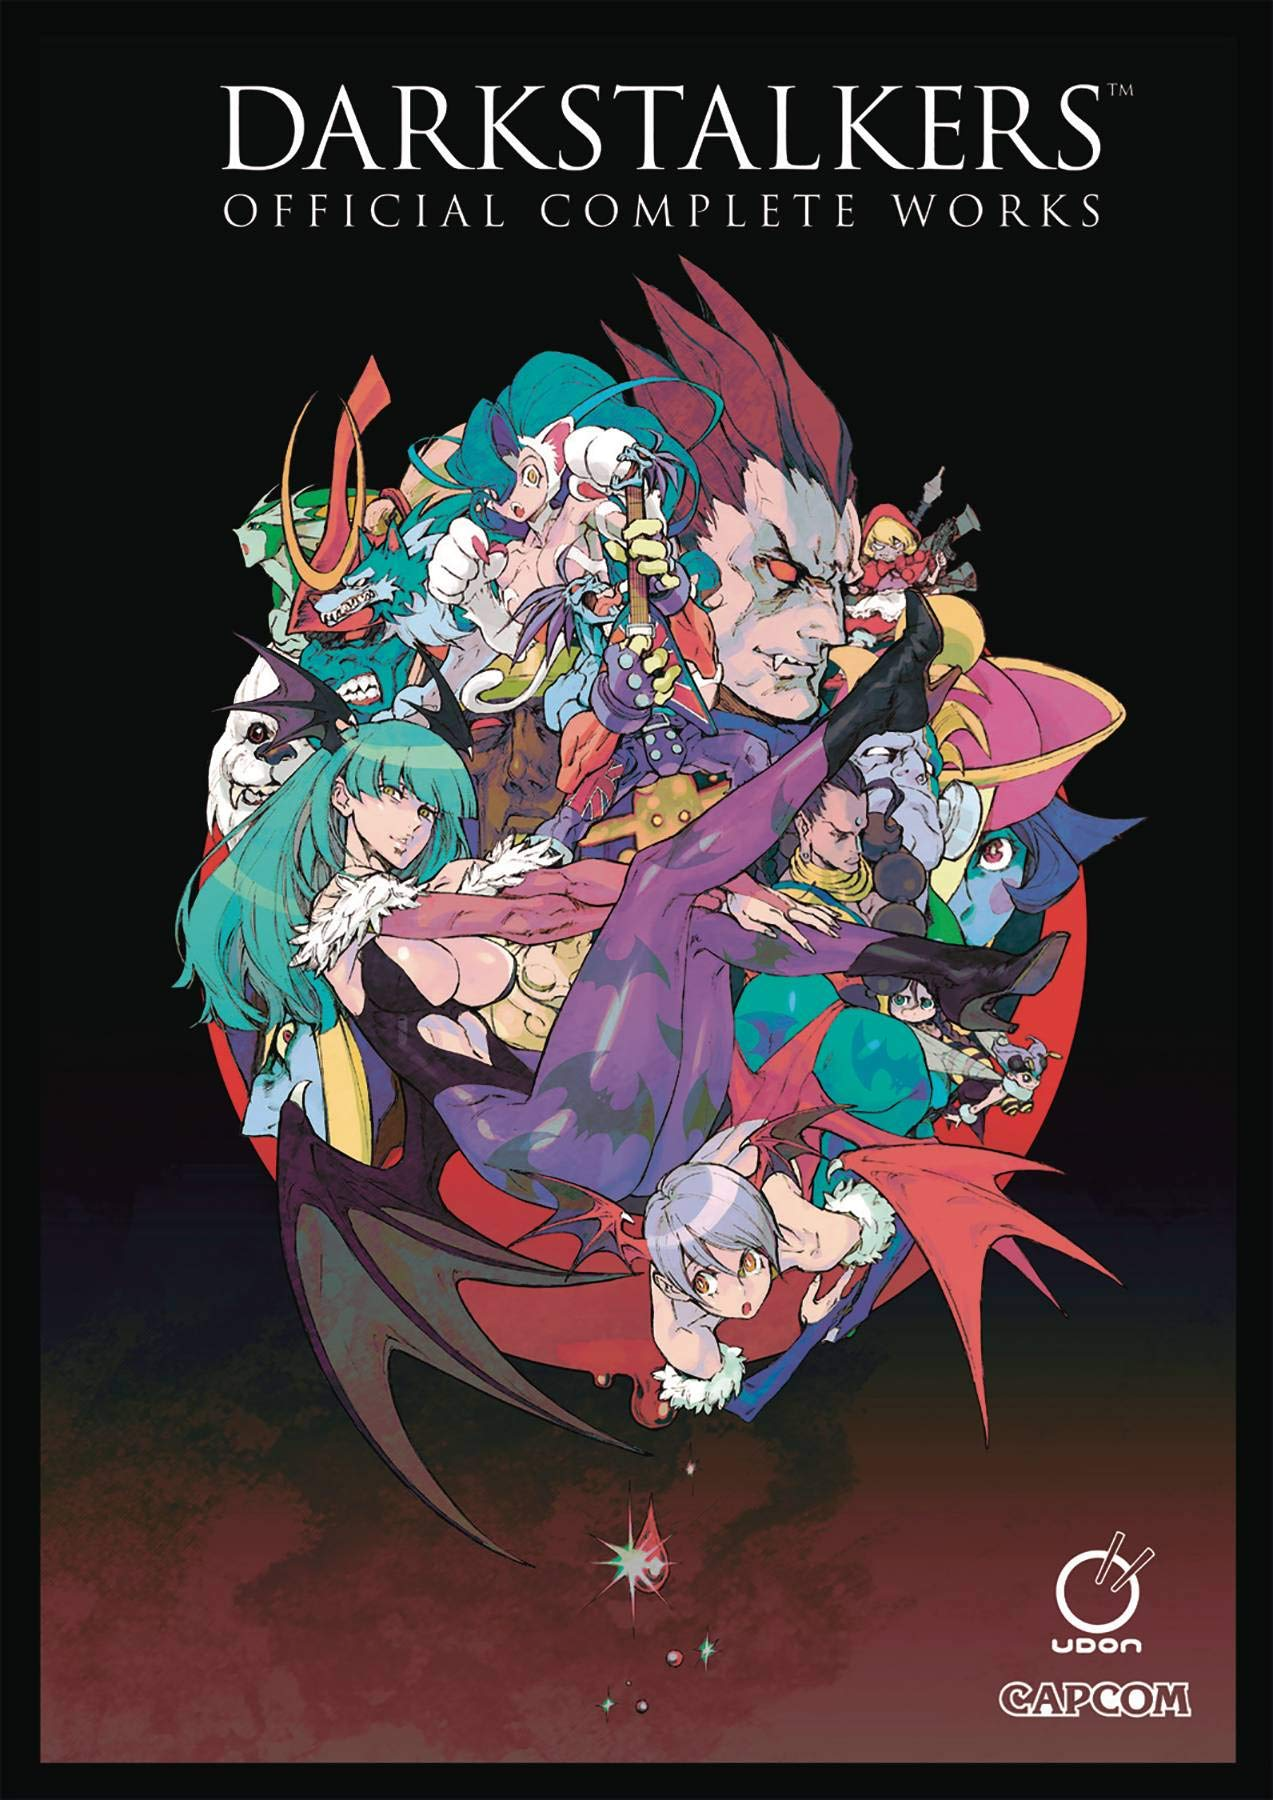 Darkstalkers: Official Complete Works Hardcover by Udon Entertainment